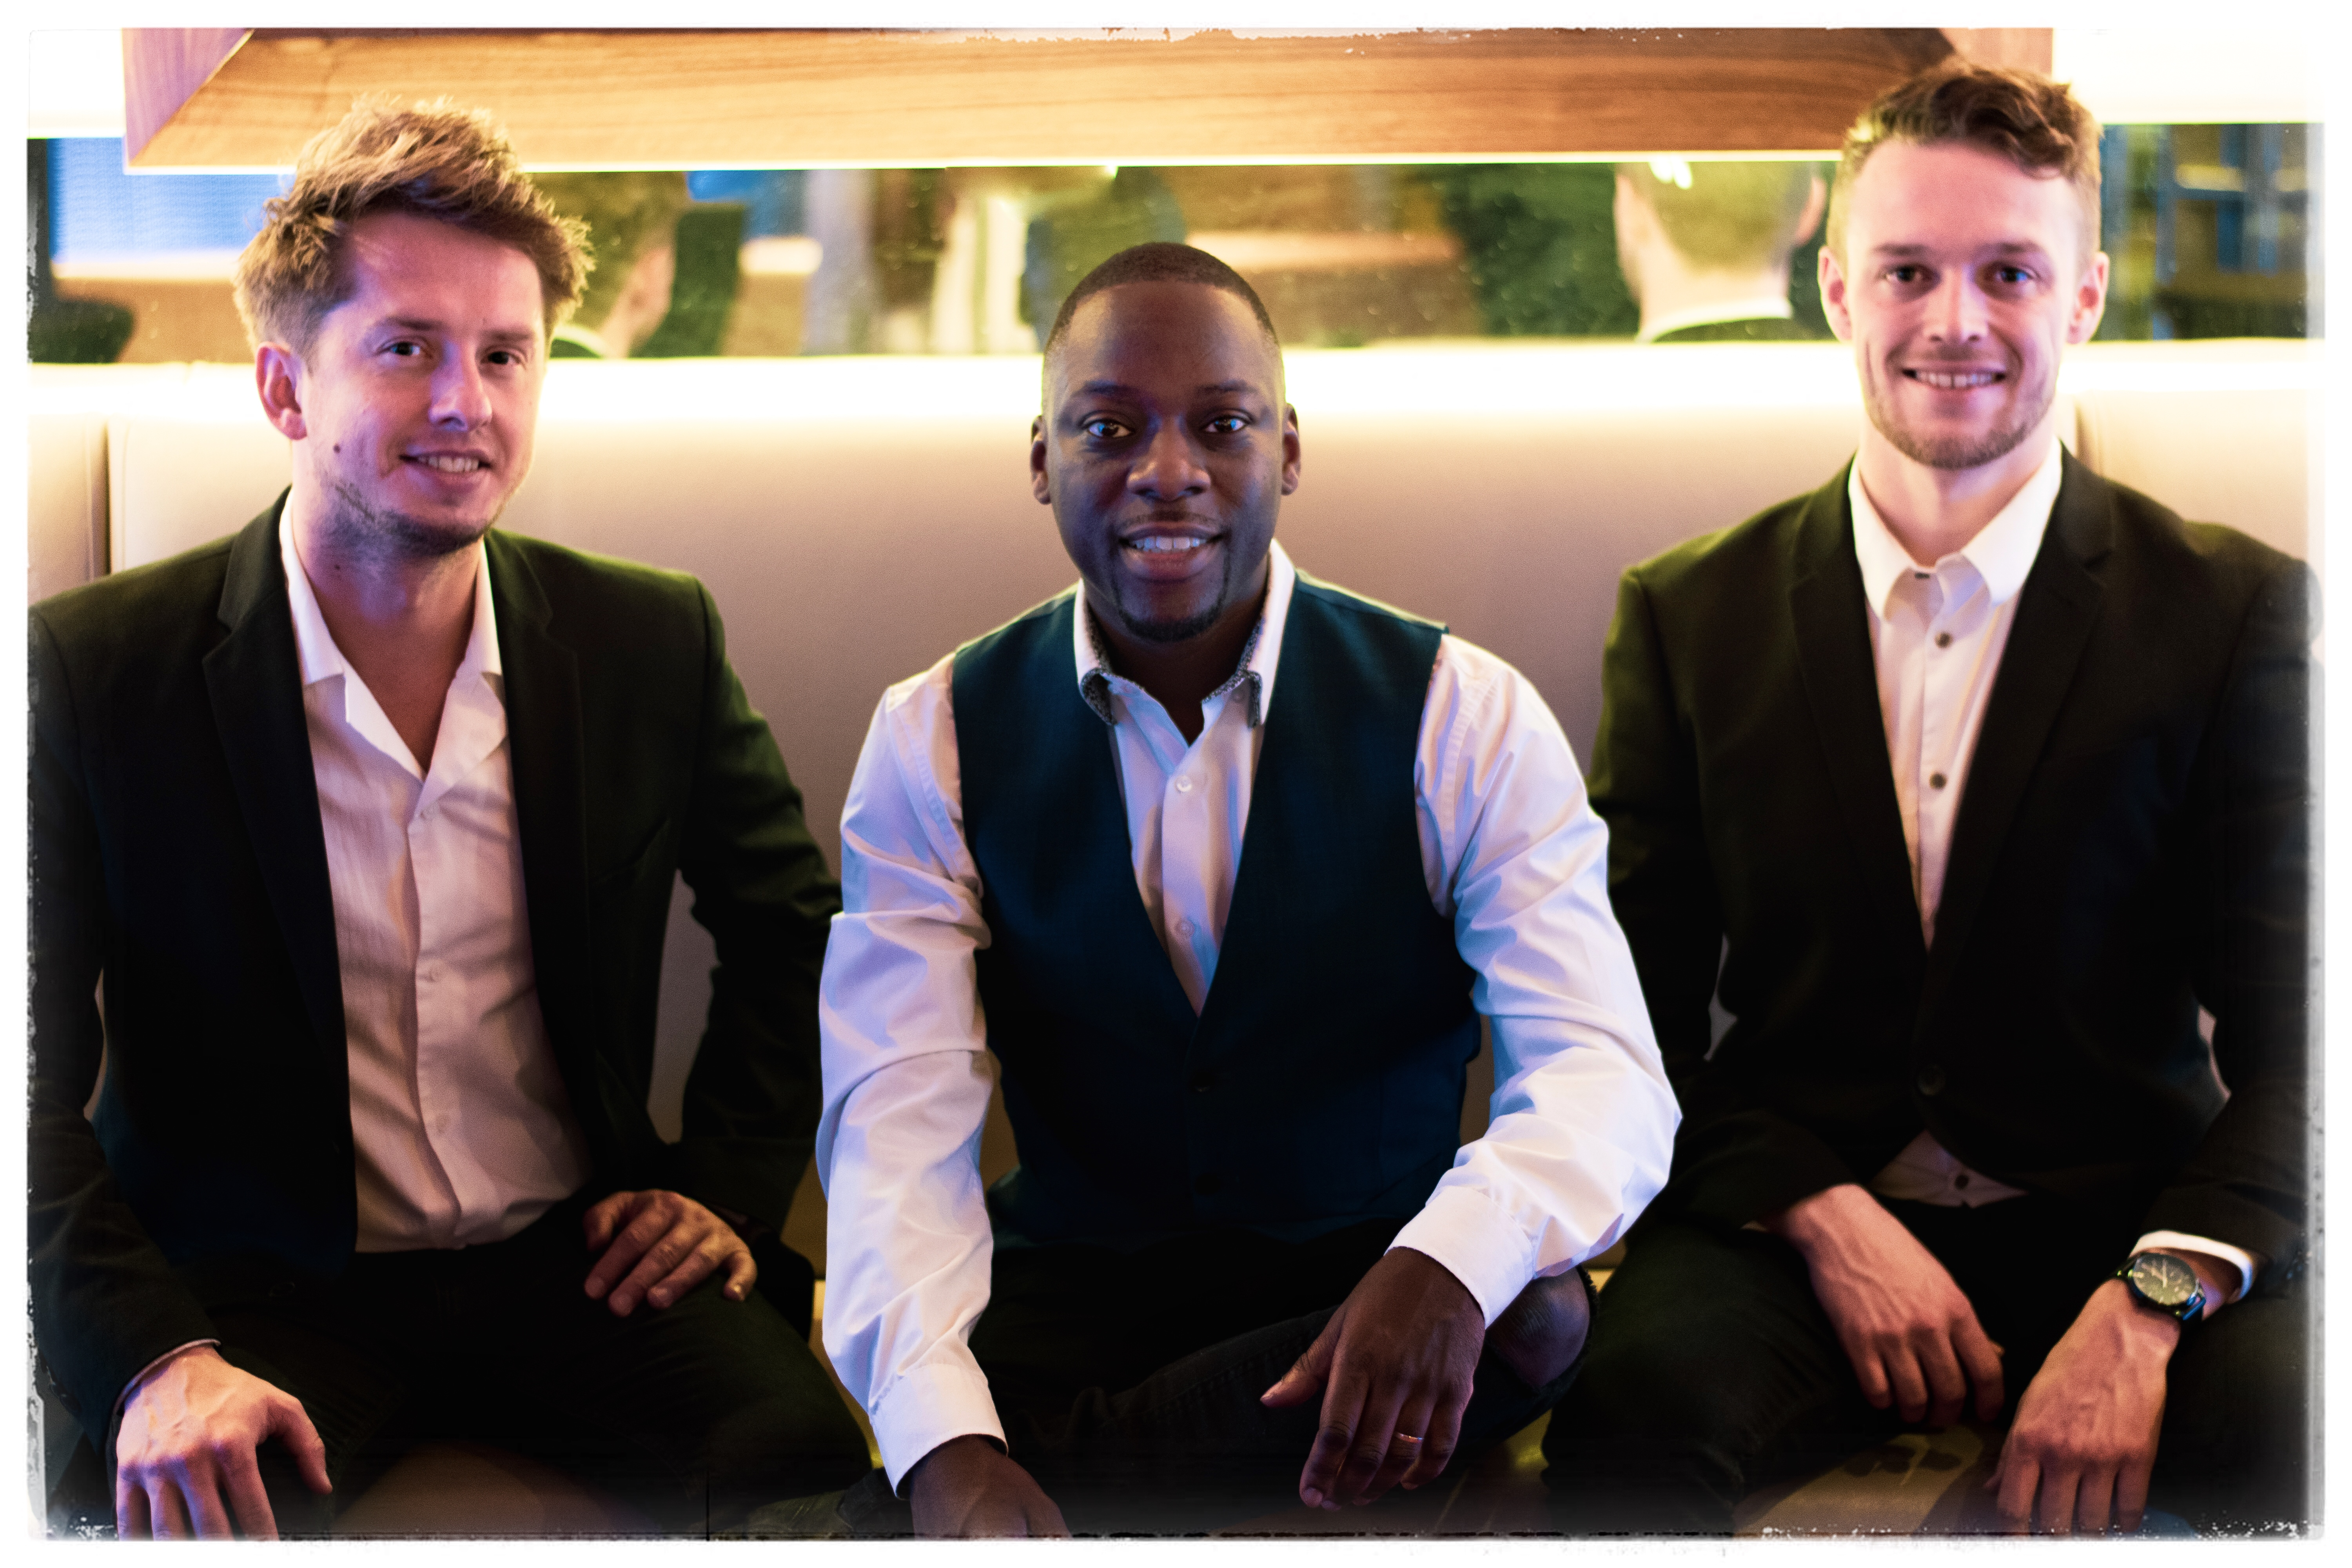 the piano singer trio sitting at a gig